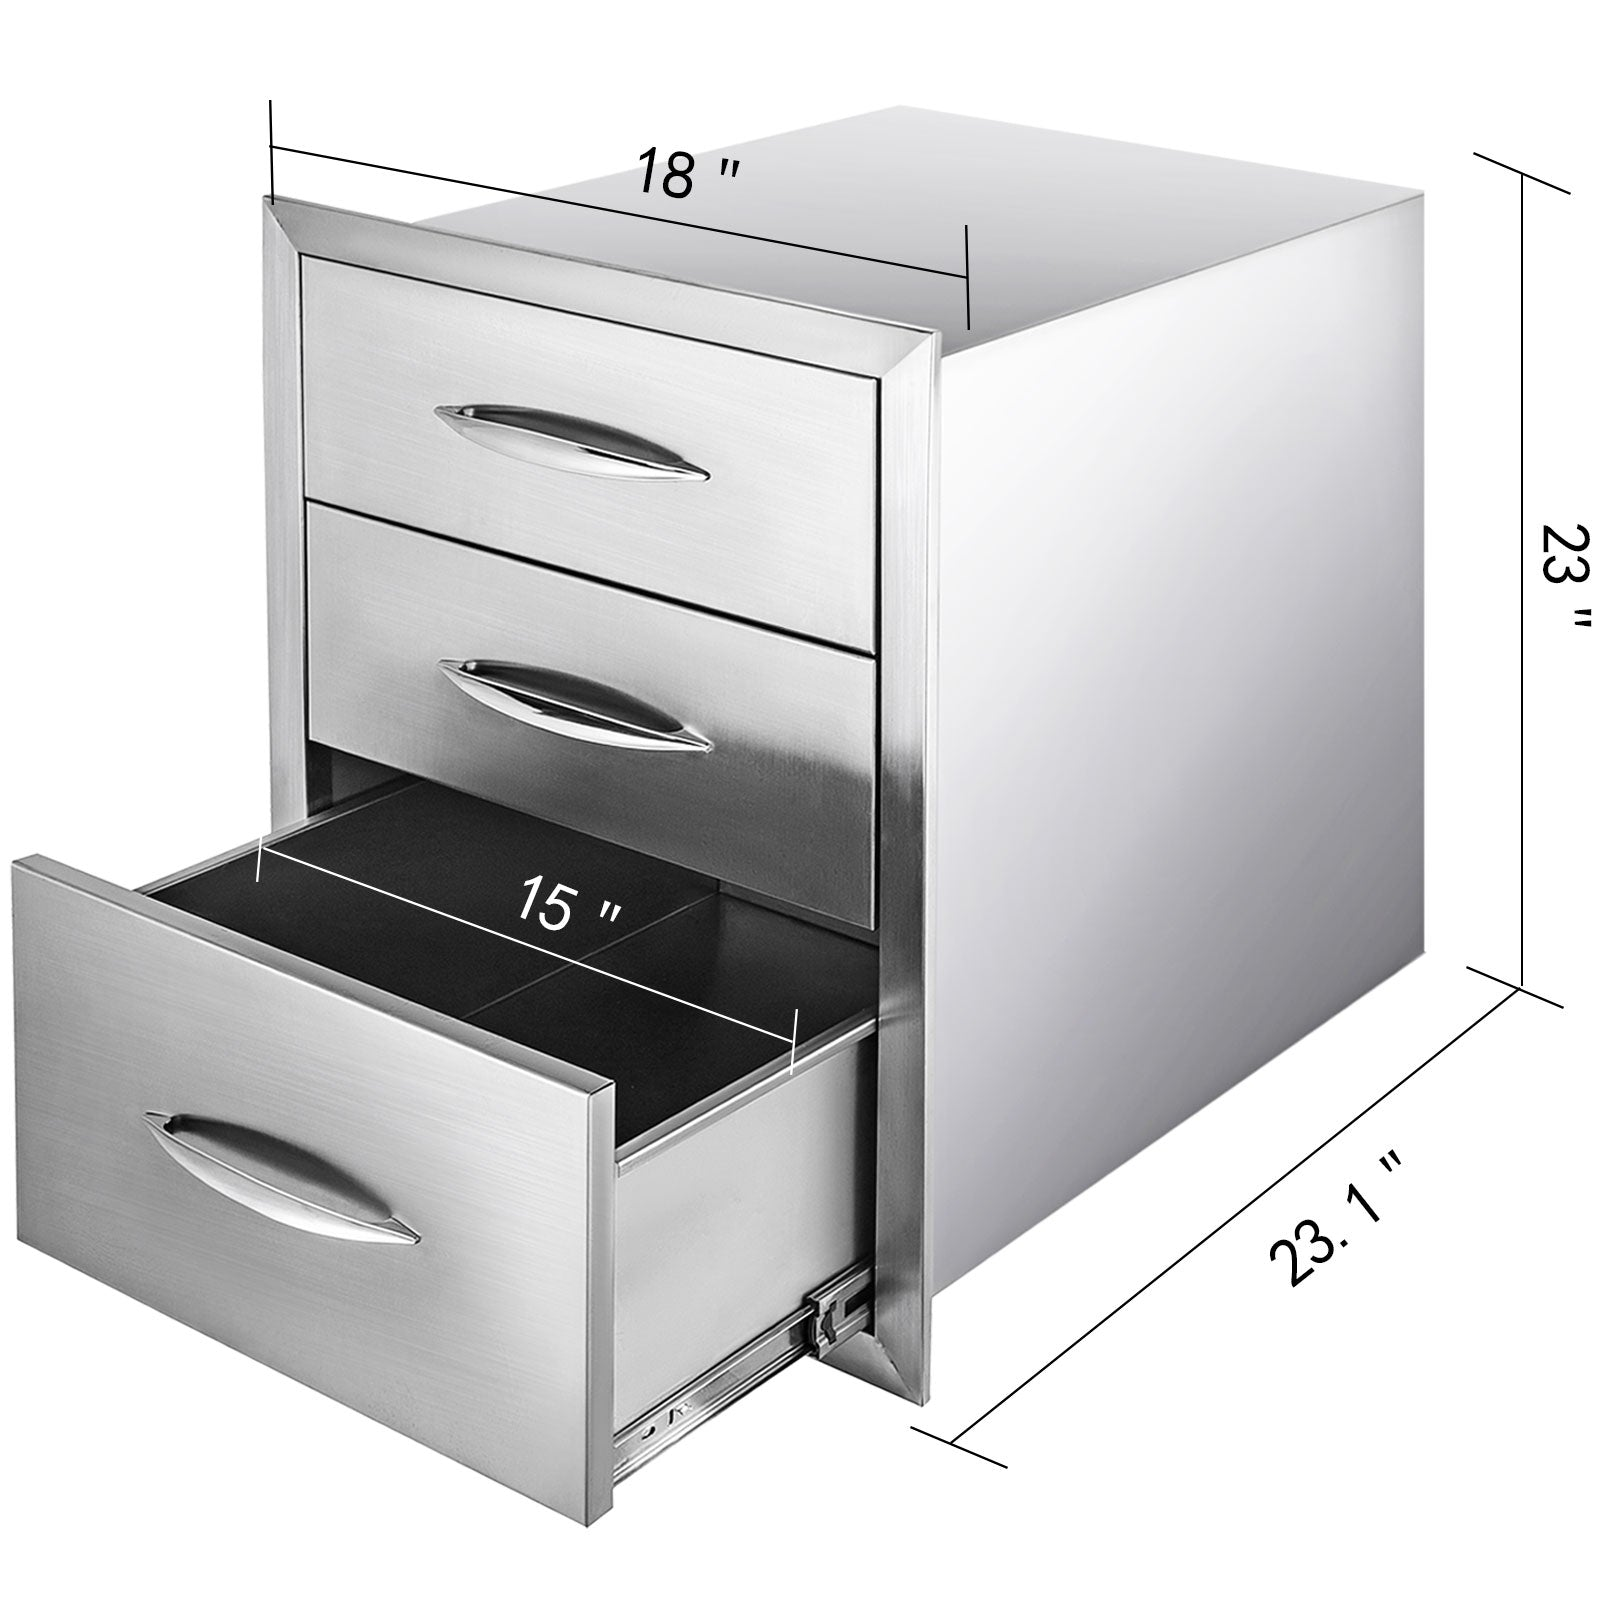 Outdoor Kitchen Drawer Bbq Island Drawer Storage 45x58 Cm Stainless Steel Drawer